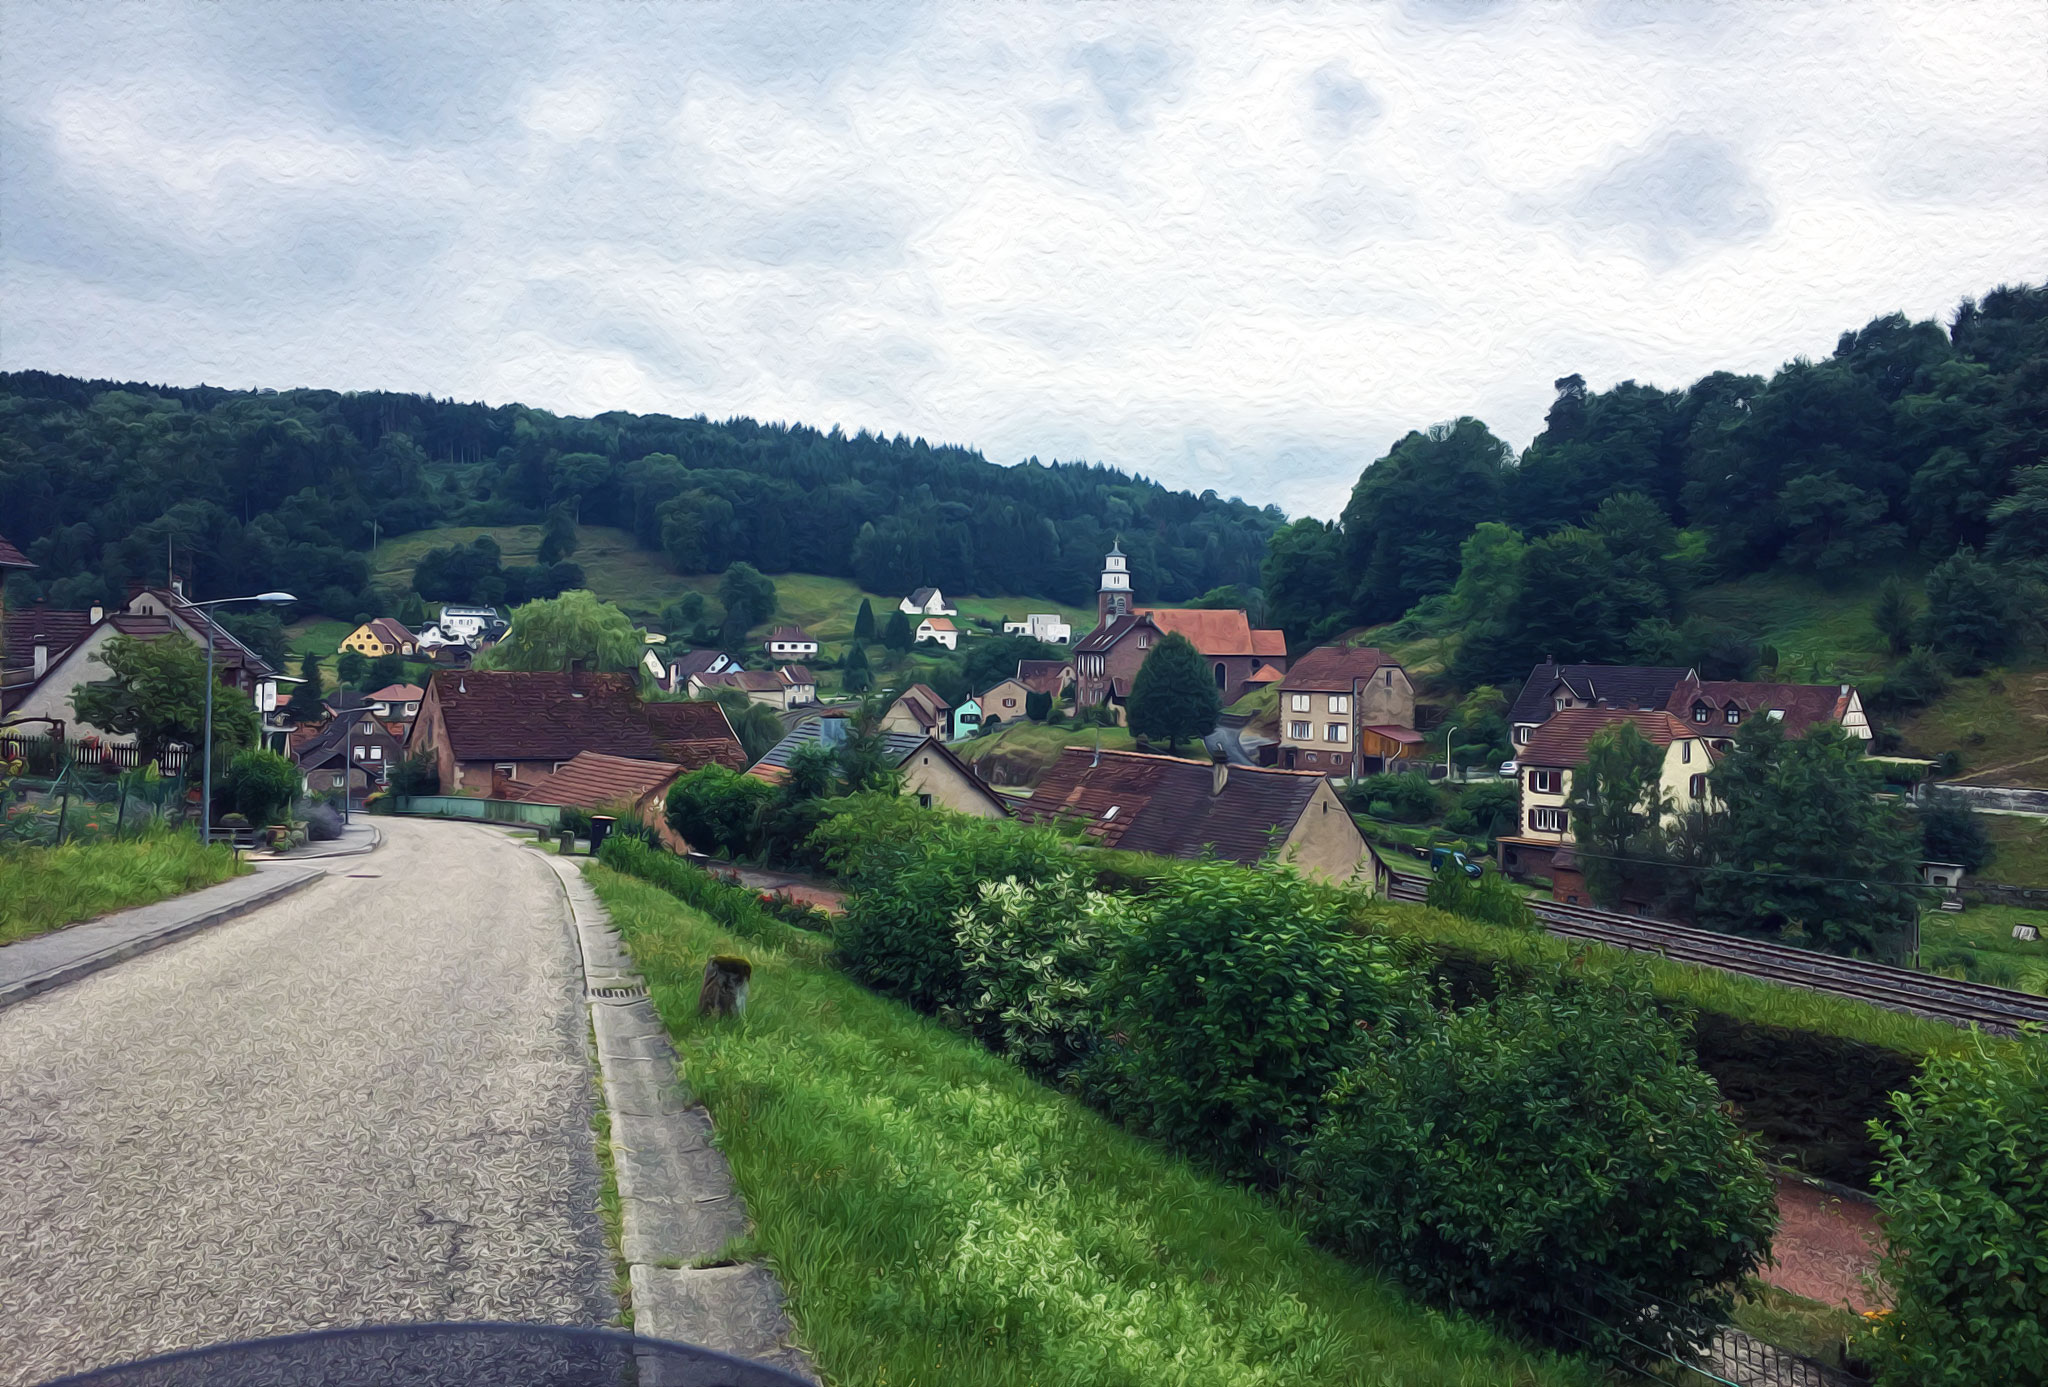 In the area and village of Hinsbourg. Added a little artistic touch :)